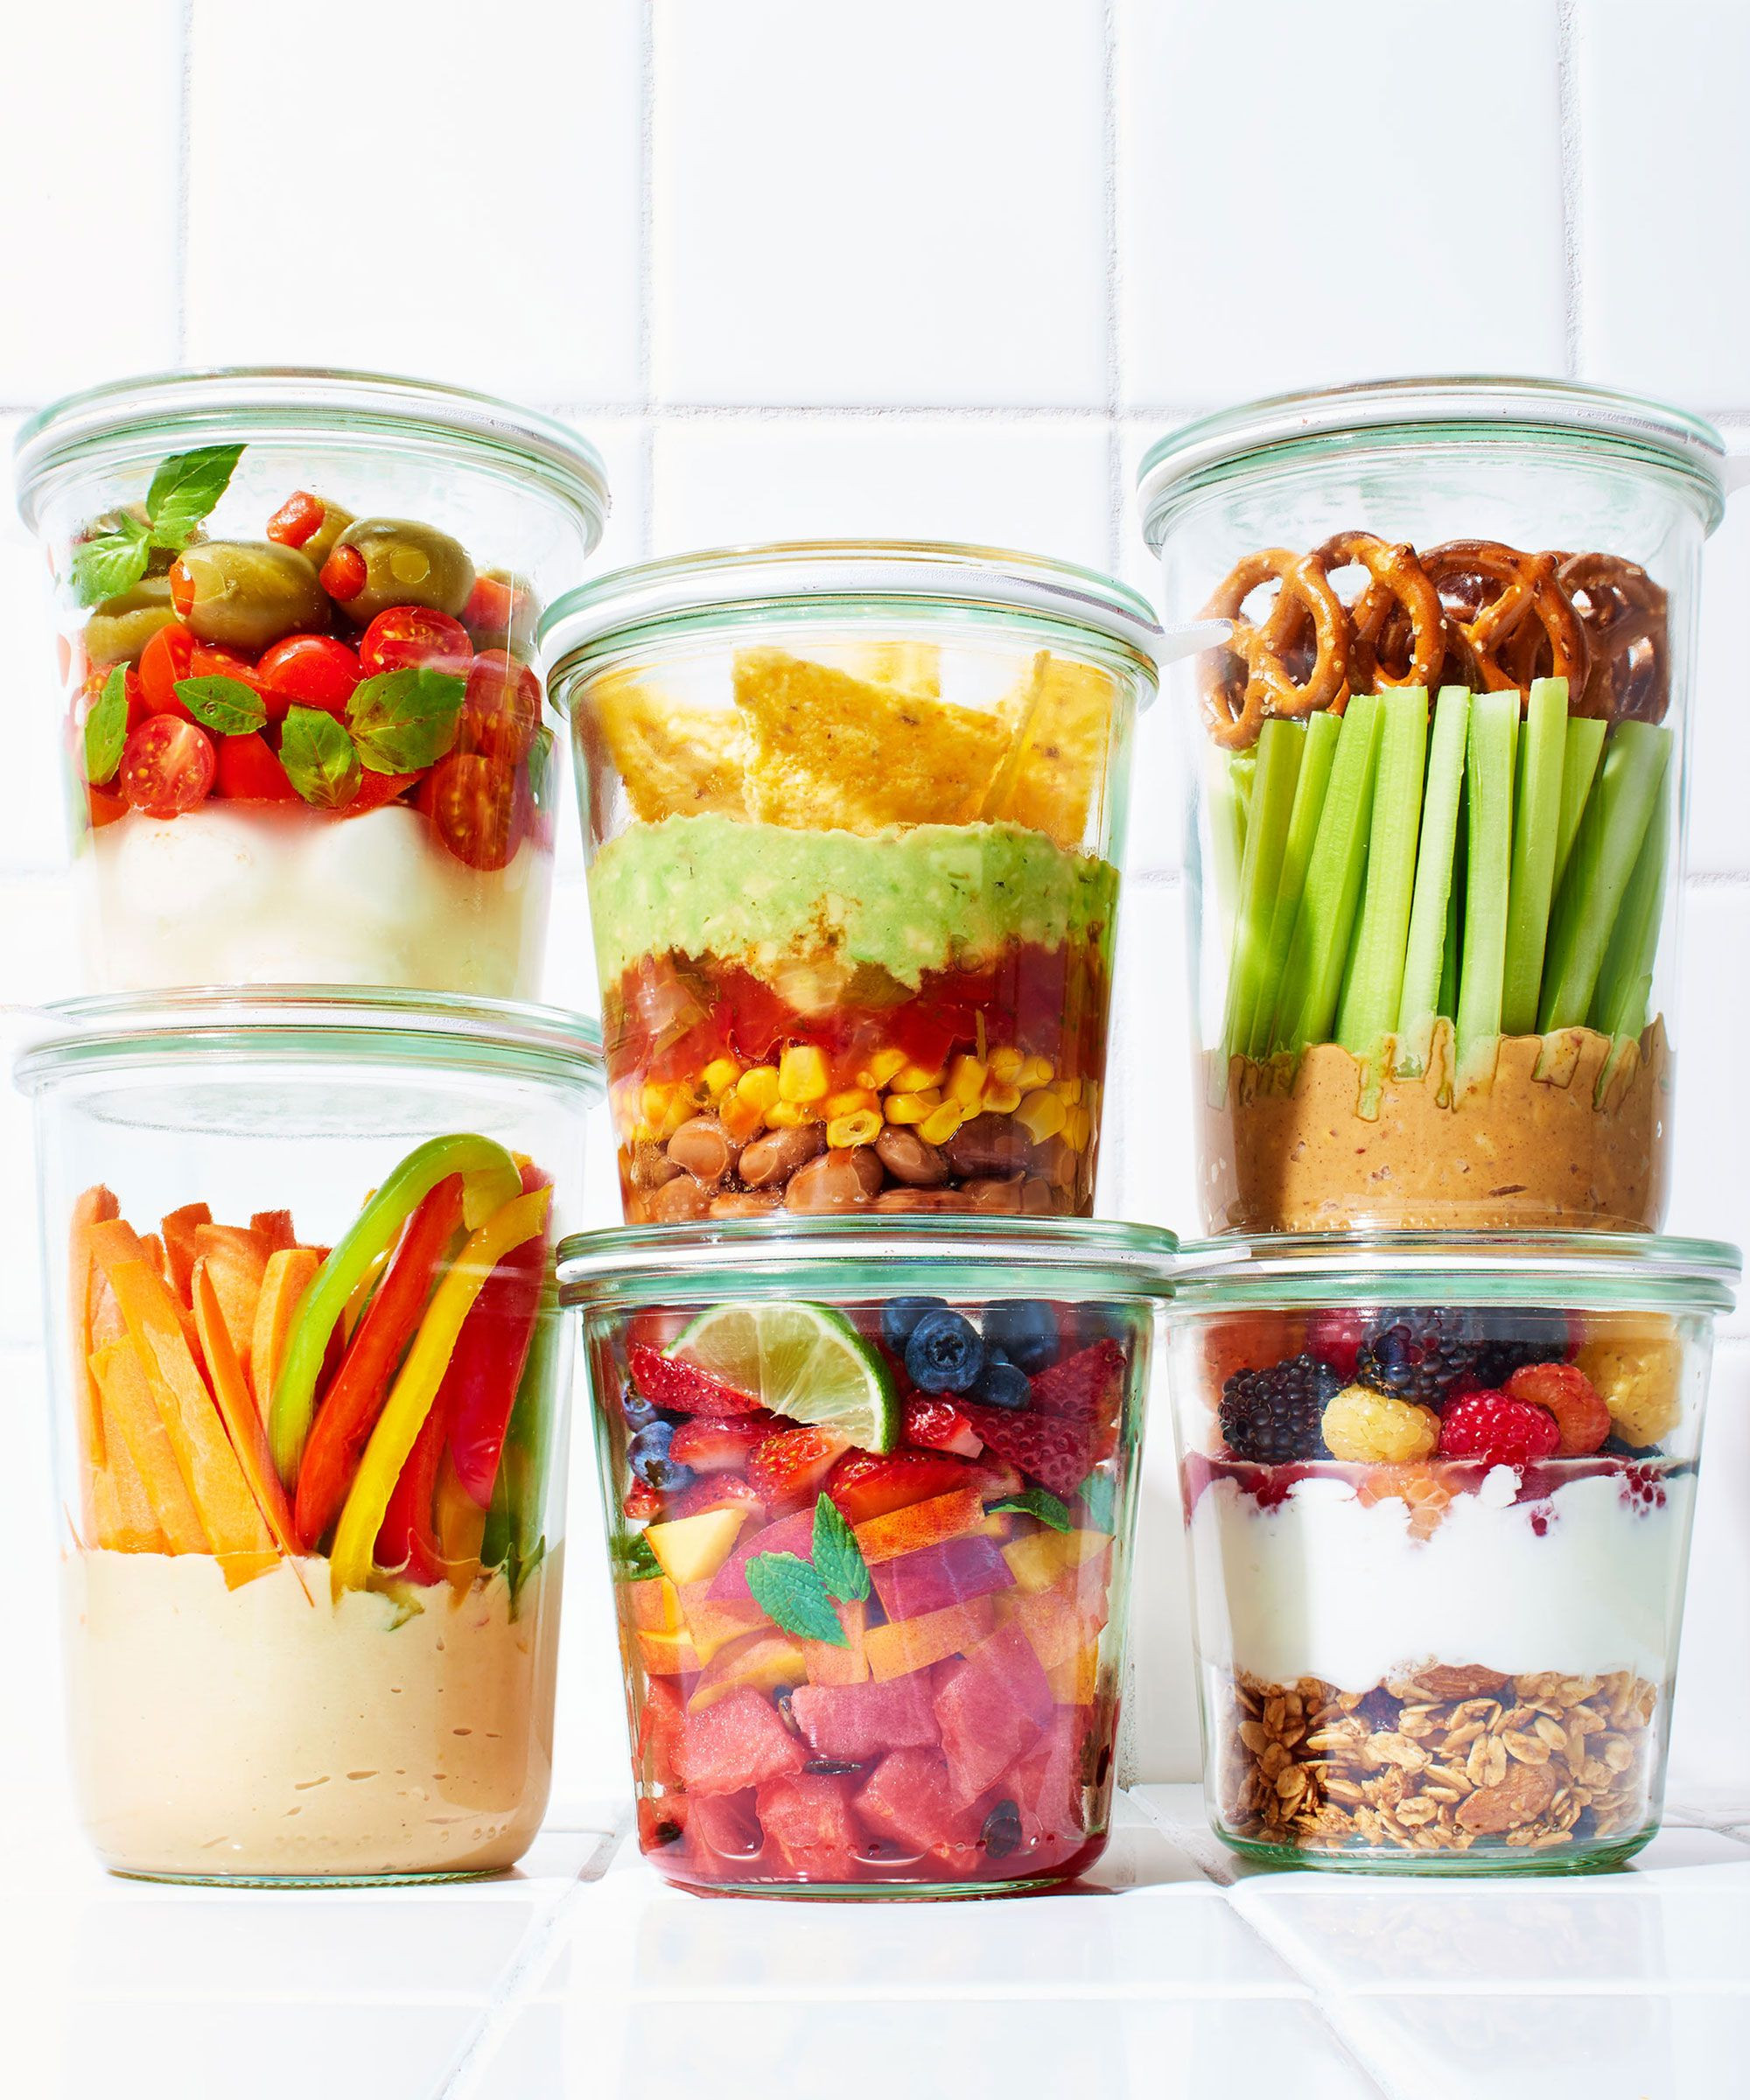 Healthy Meeting Snacks  Snack Recipes Easy Mason Jar Snacks Ideas